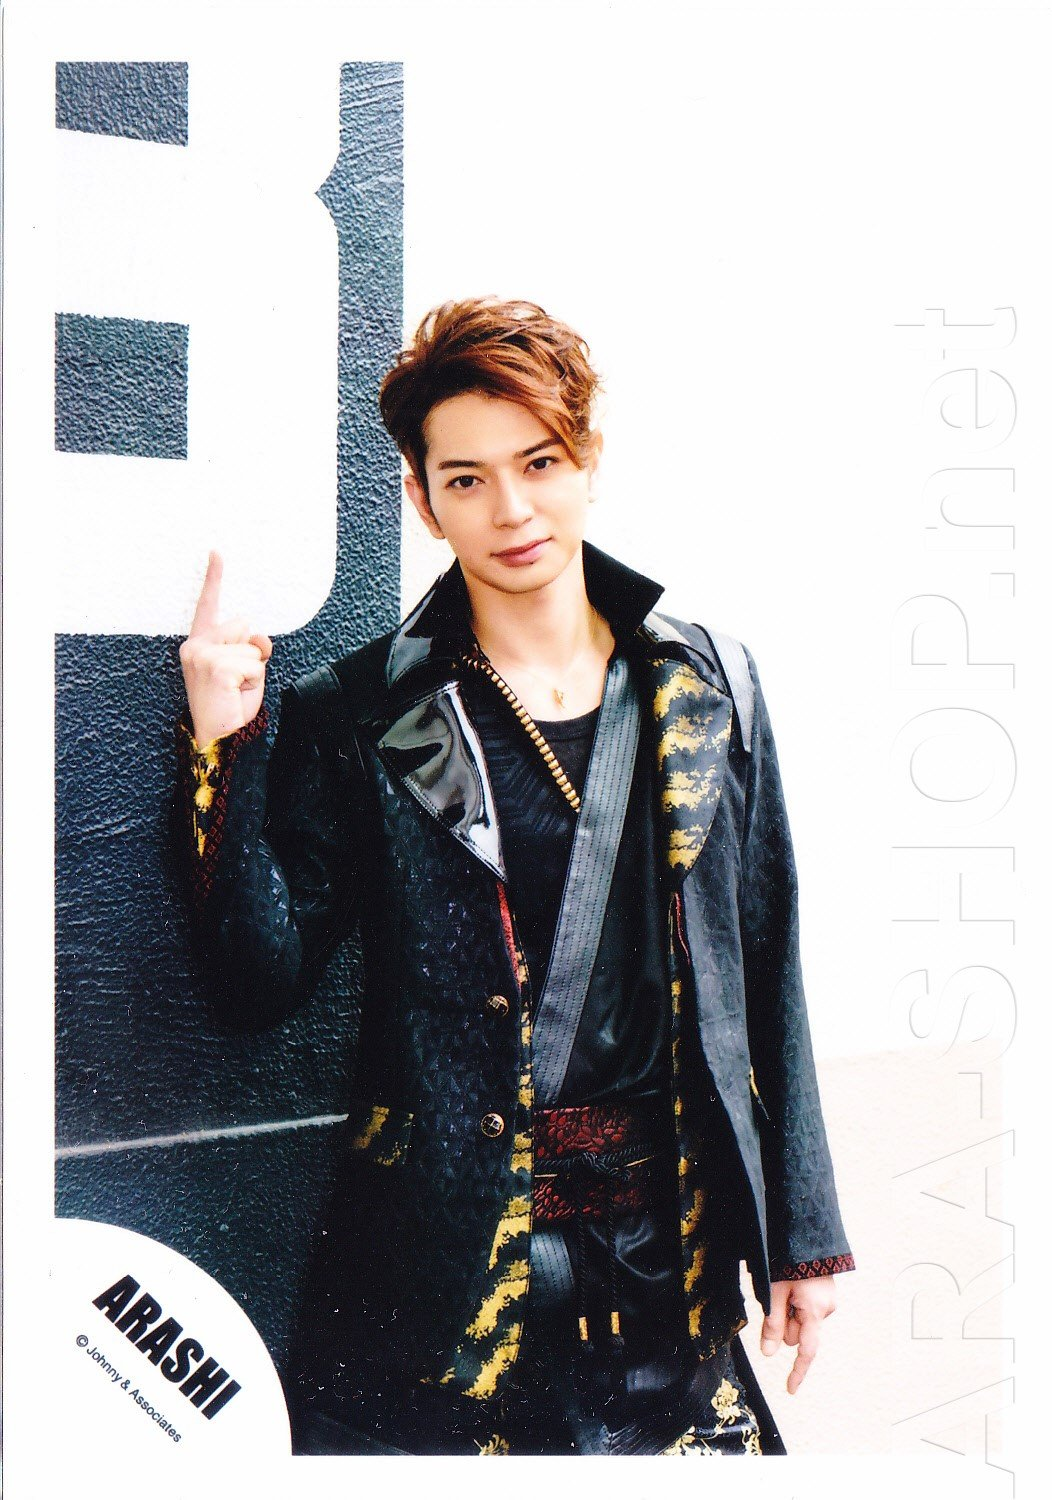 ARASHI - MATSUMOTO JUN - Johnny's Shop Photo #029